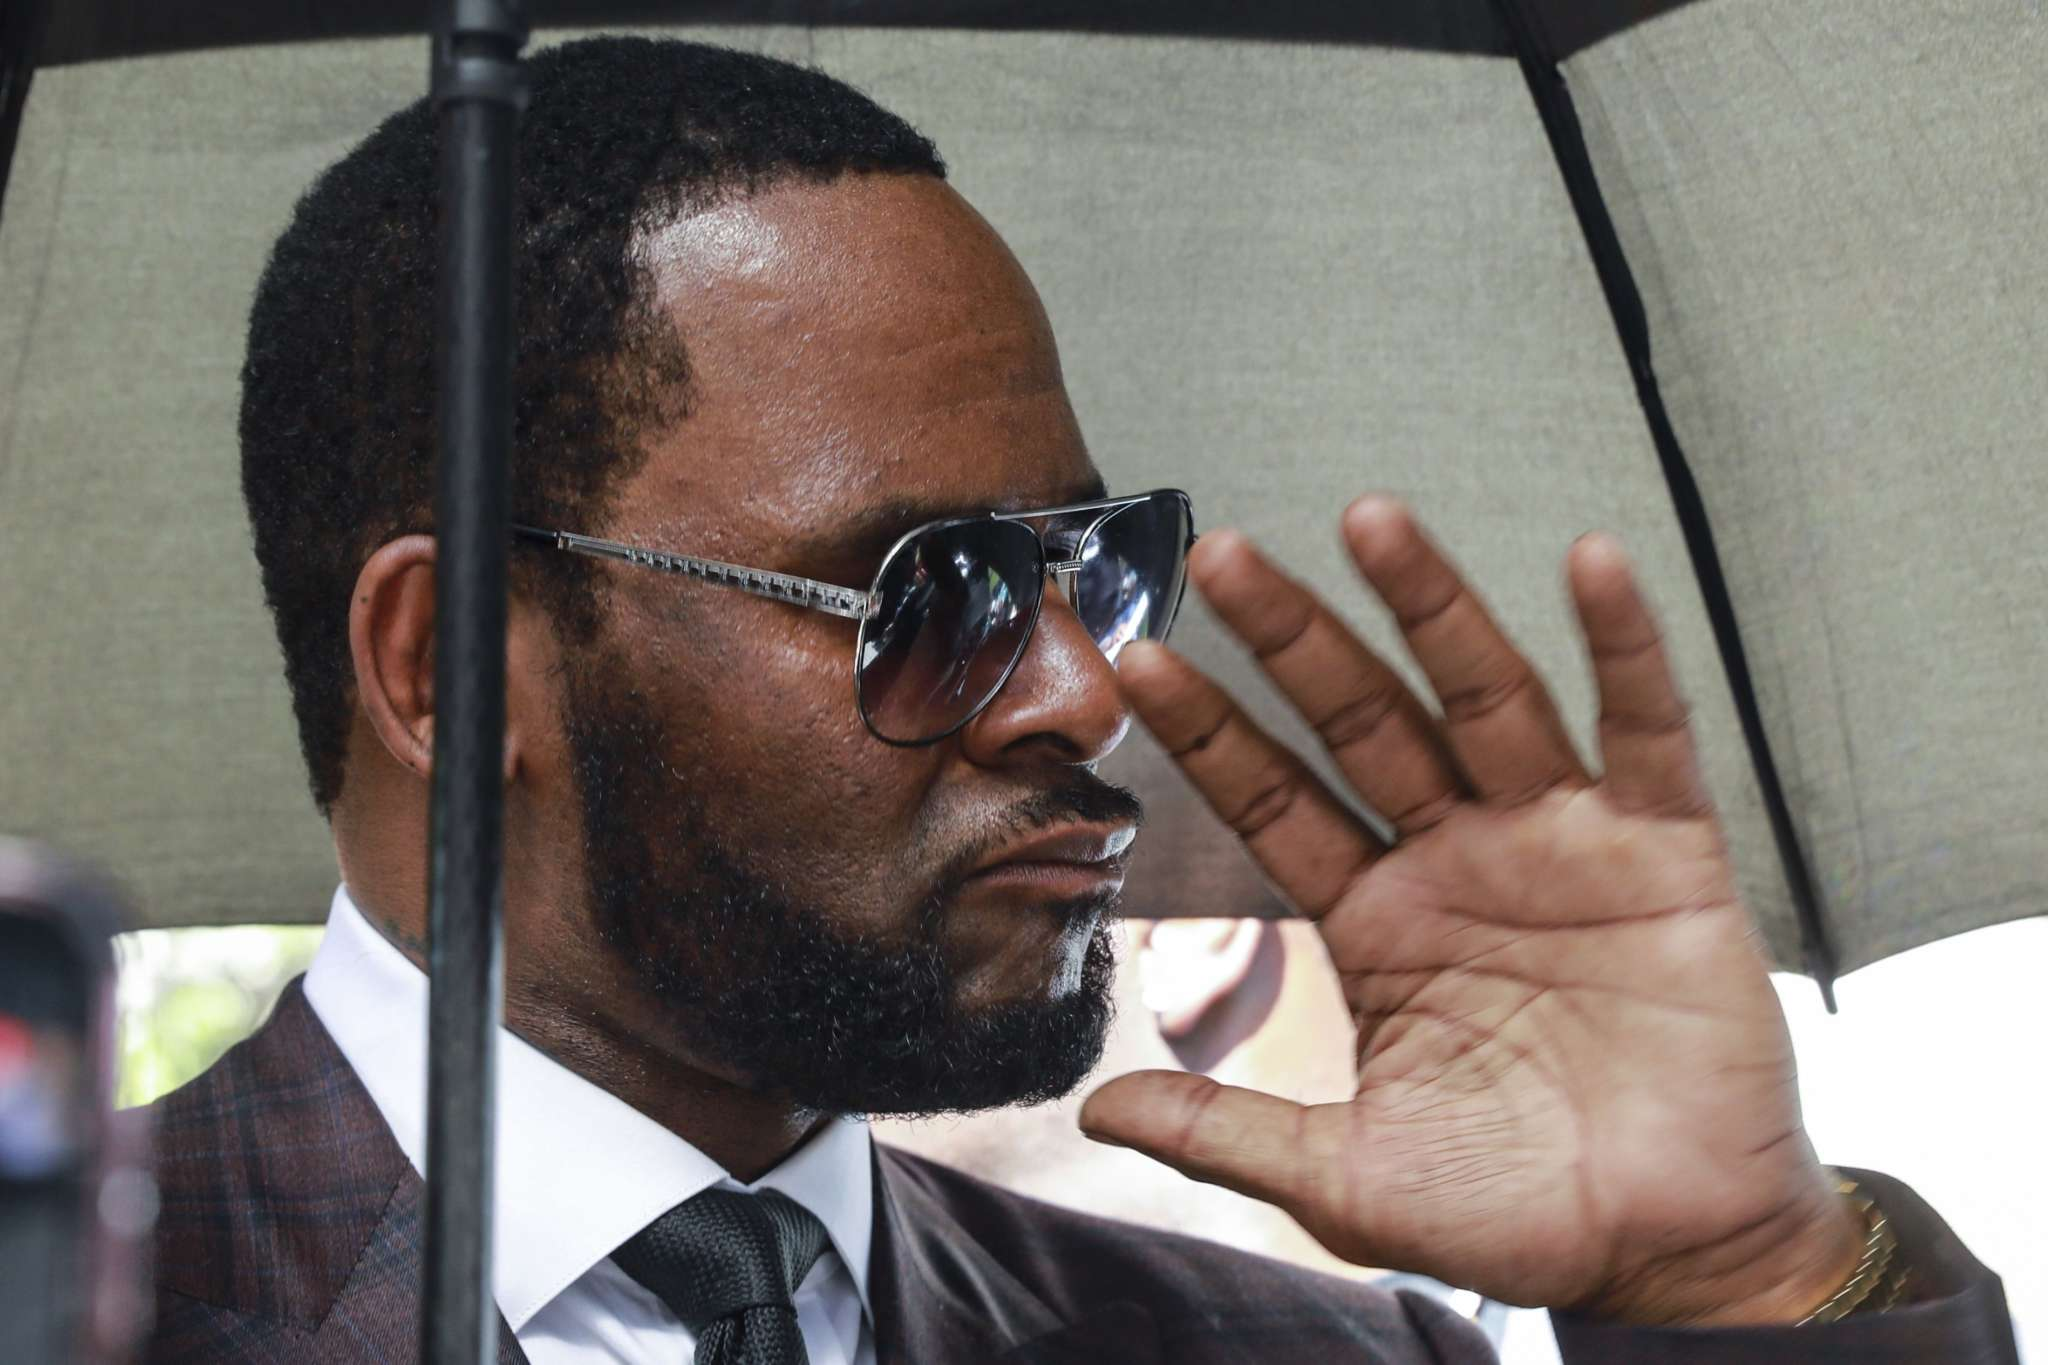 Lifetime Builds On Their 'Surviving R. Kelly' Series - A New Follow-Up Is Announced - People Believe He's Being Pushed To Suicide